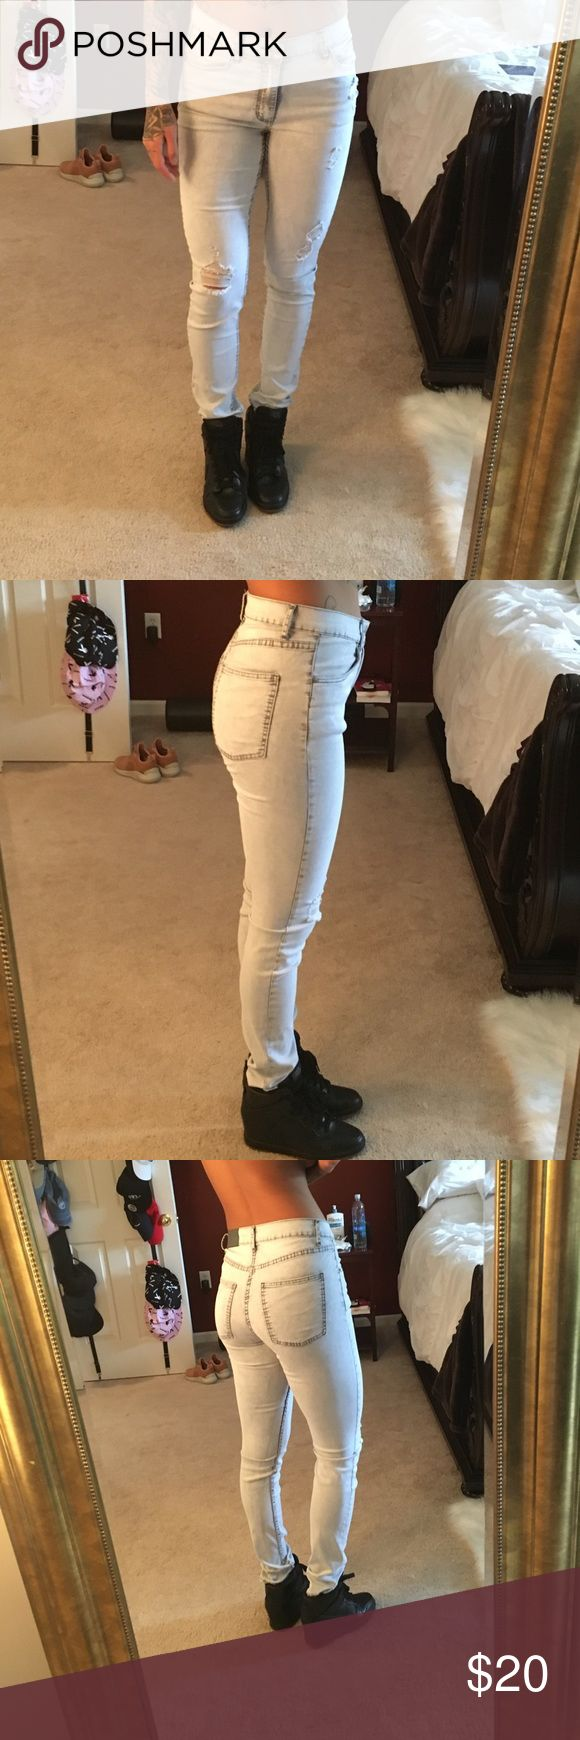 Cheap Monday second skin destruction grey jeans Excellent condition! I am 28/29 in jeans and they are a little too loose for me! Very comfortable, worn twice! 76% cotton 15% polyester 7% viscose 2% elastane! Size 30, inseam 32! Cheap Monday Jeans Skinny